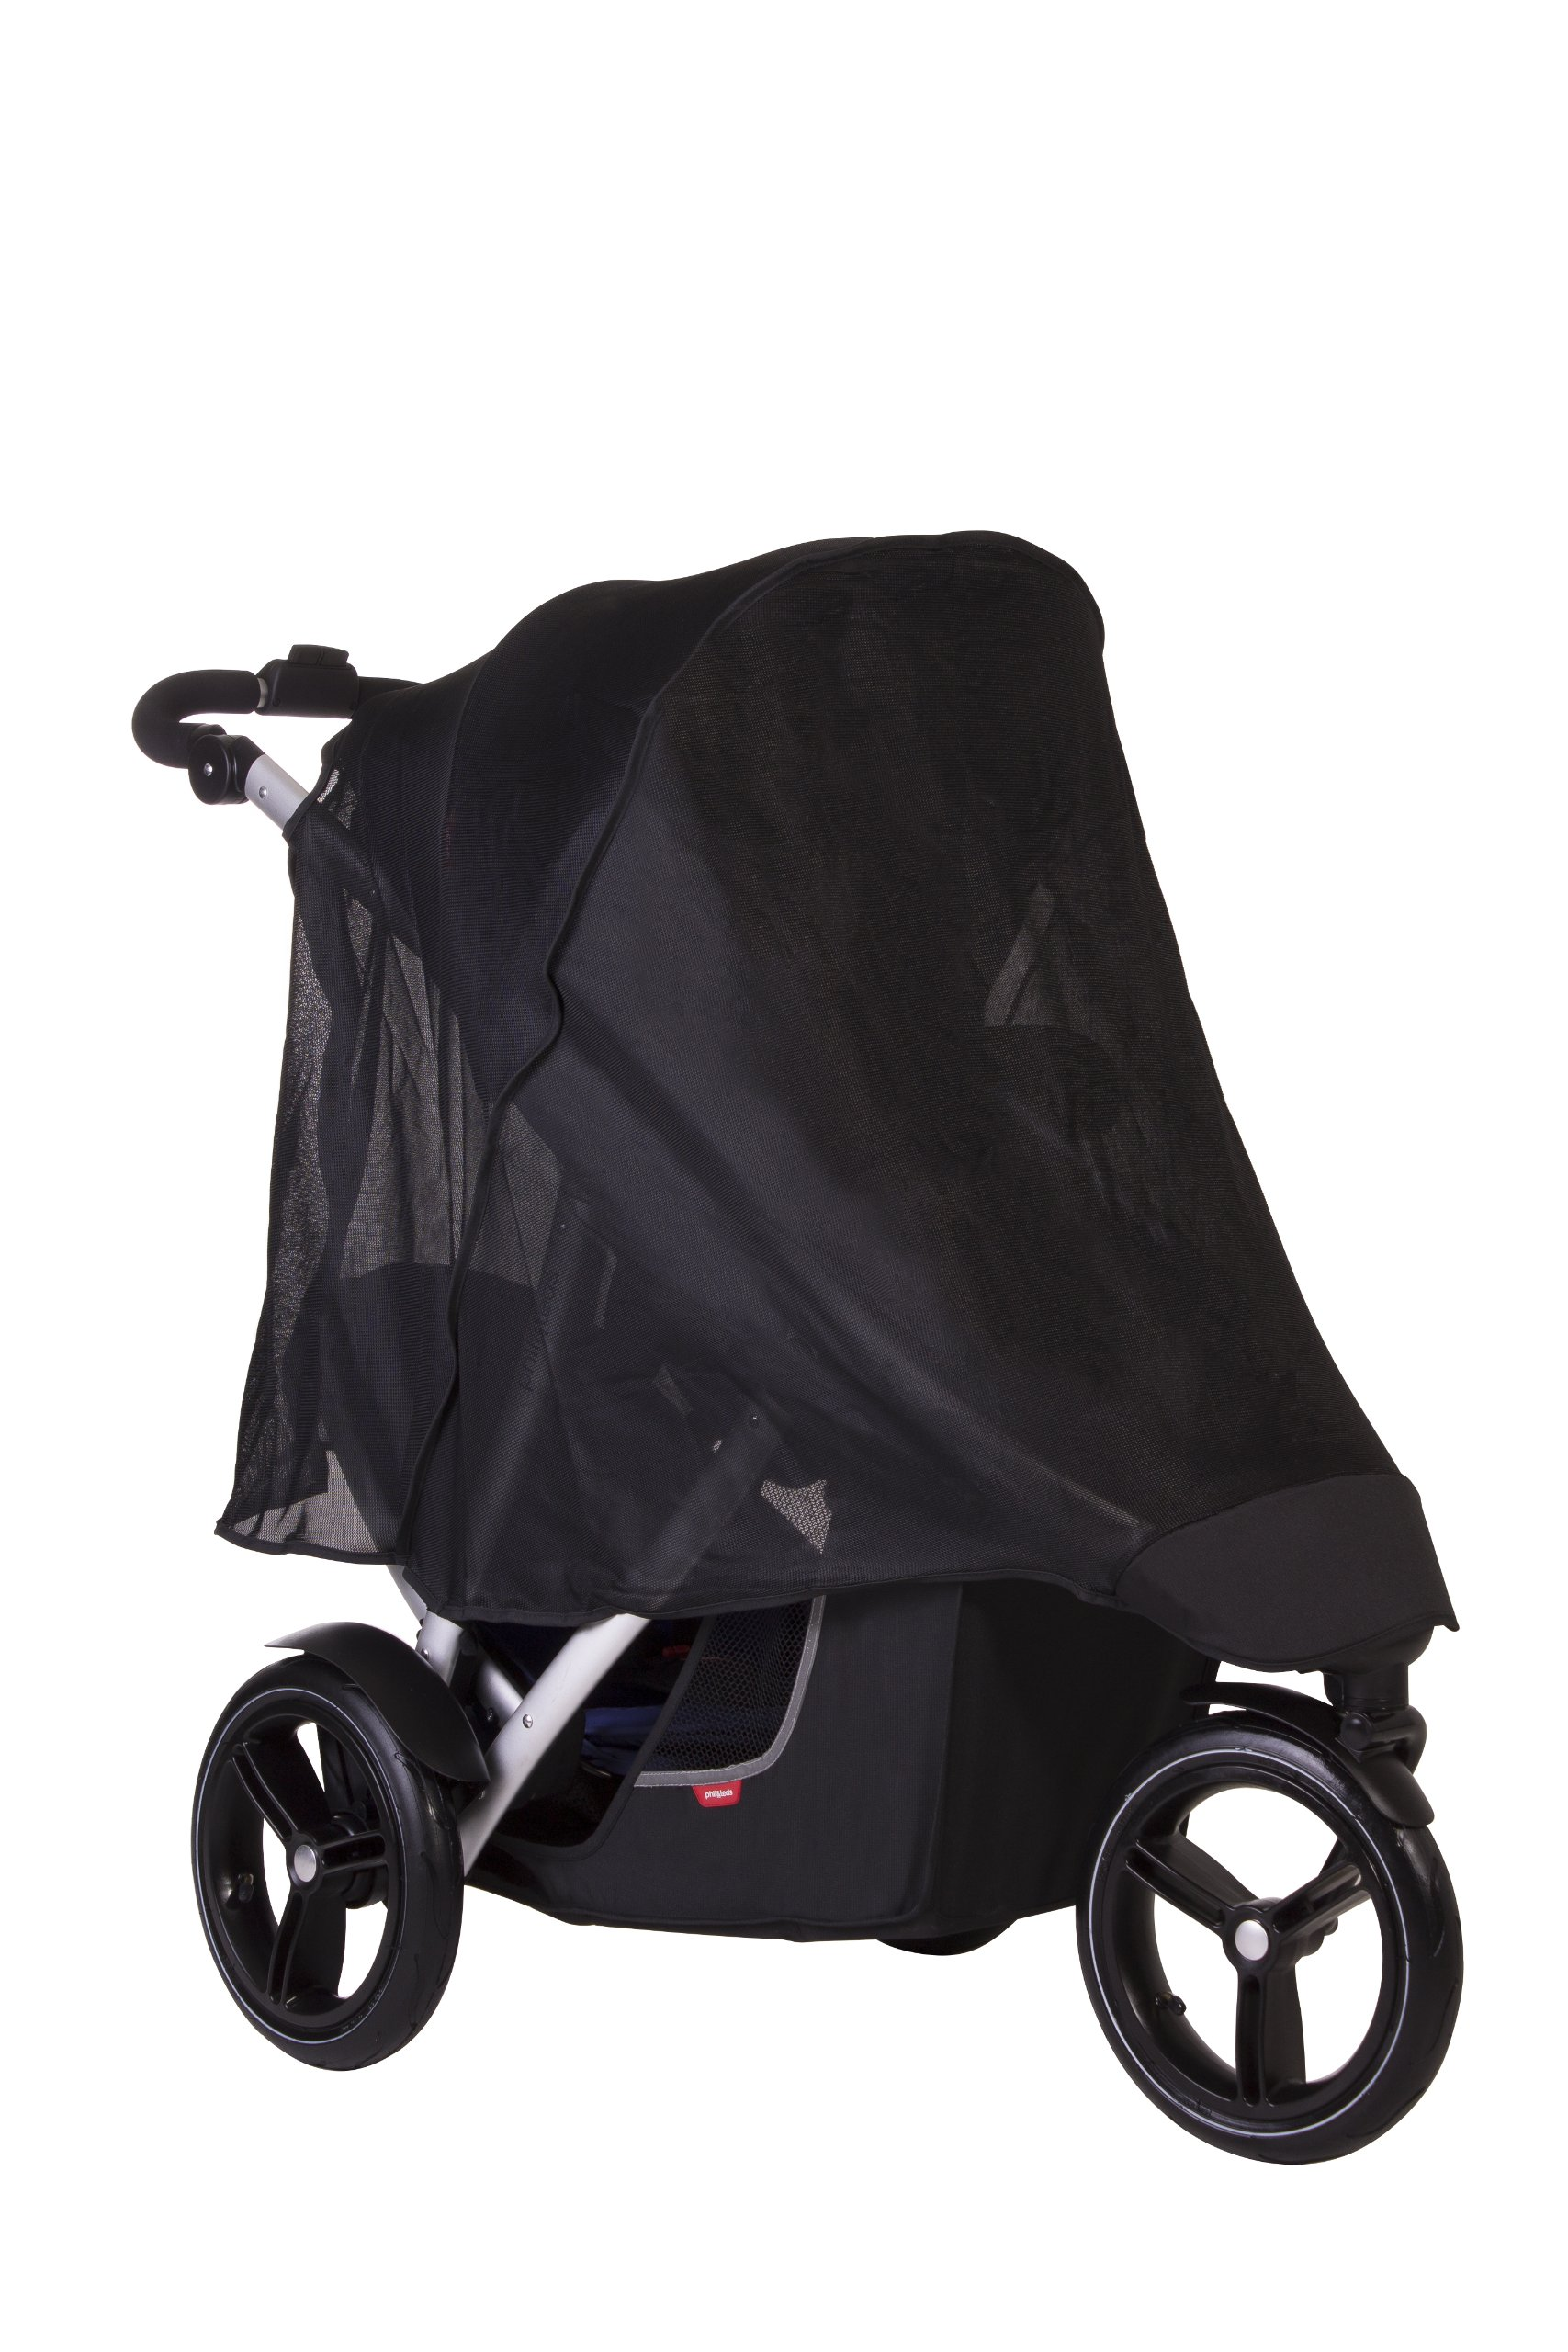 phil&teds UV Sunny Days Mesh Cover for Vibe and Verve Strollers, Double